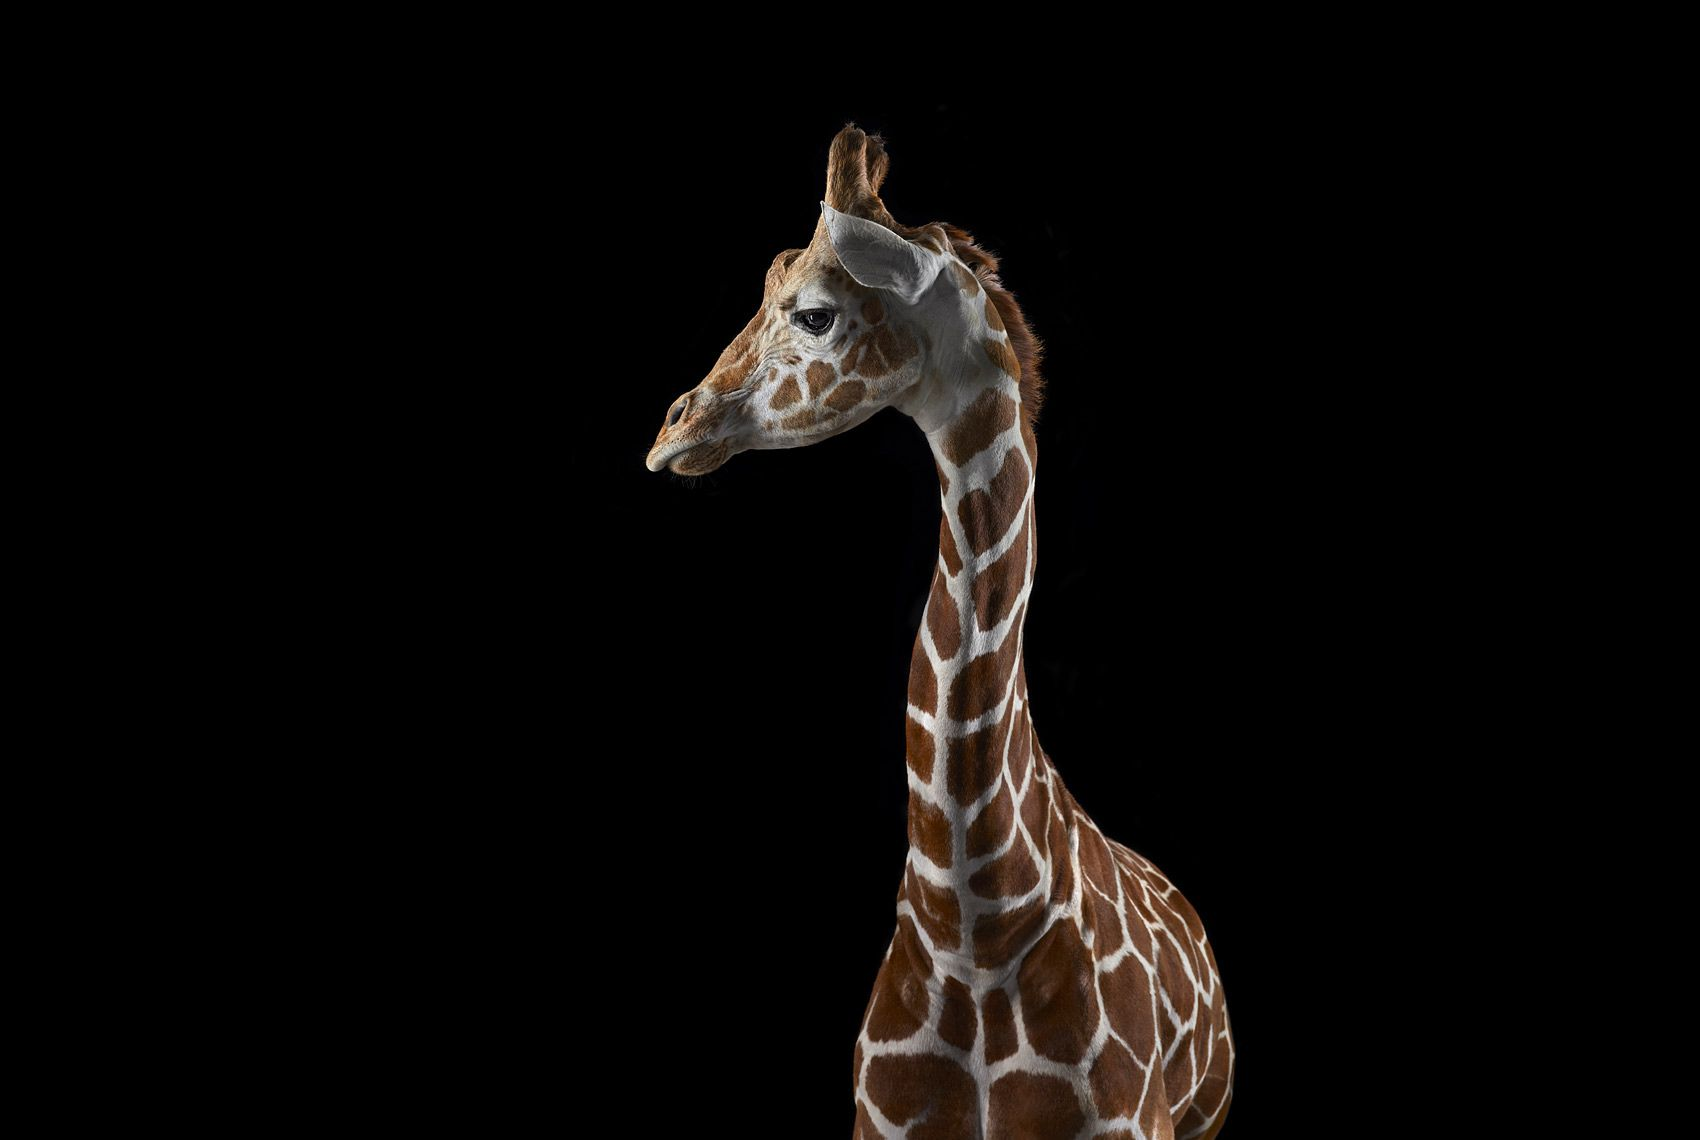 Giraffe #3, Los Angeles, CA, 2011,Brad Wilson,Photography